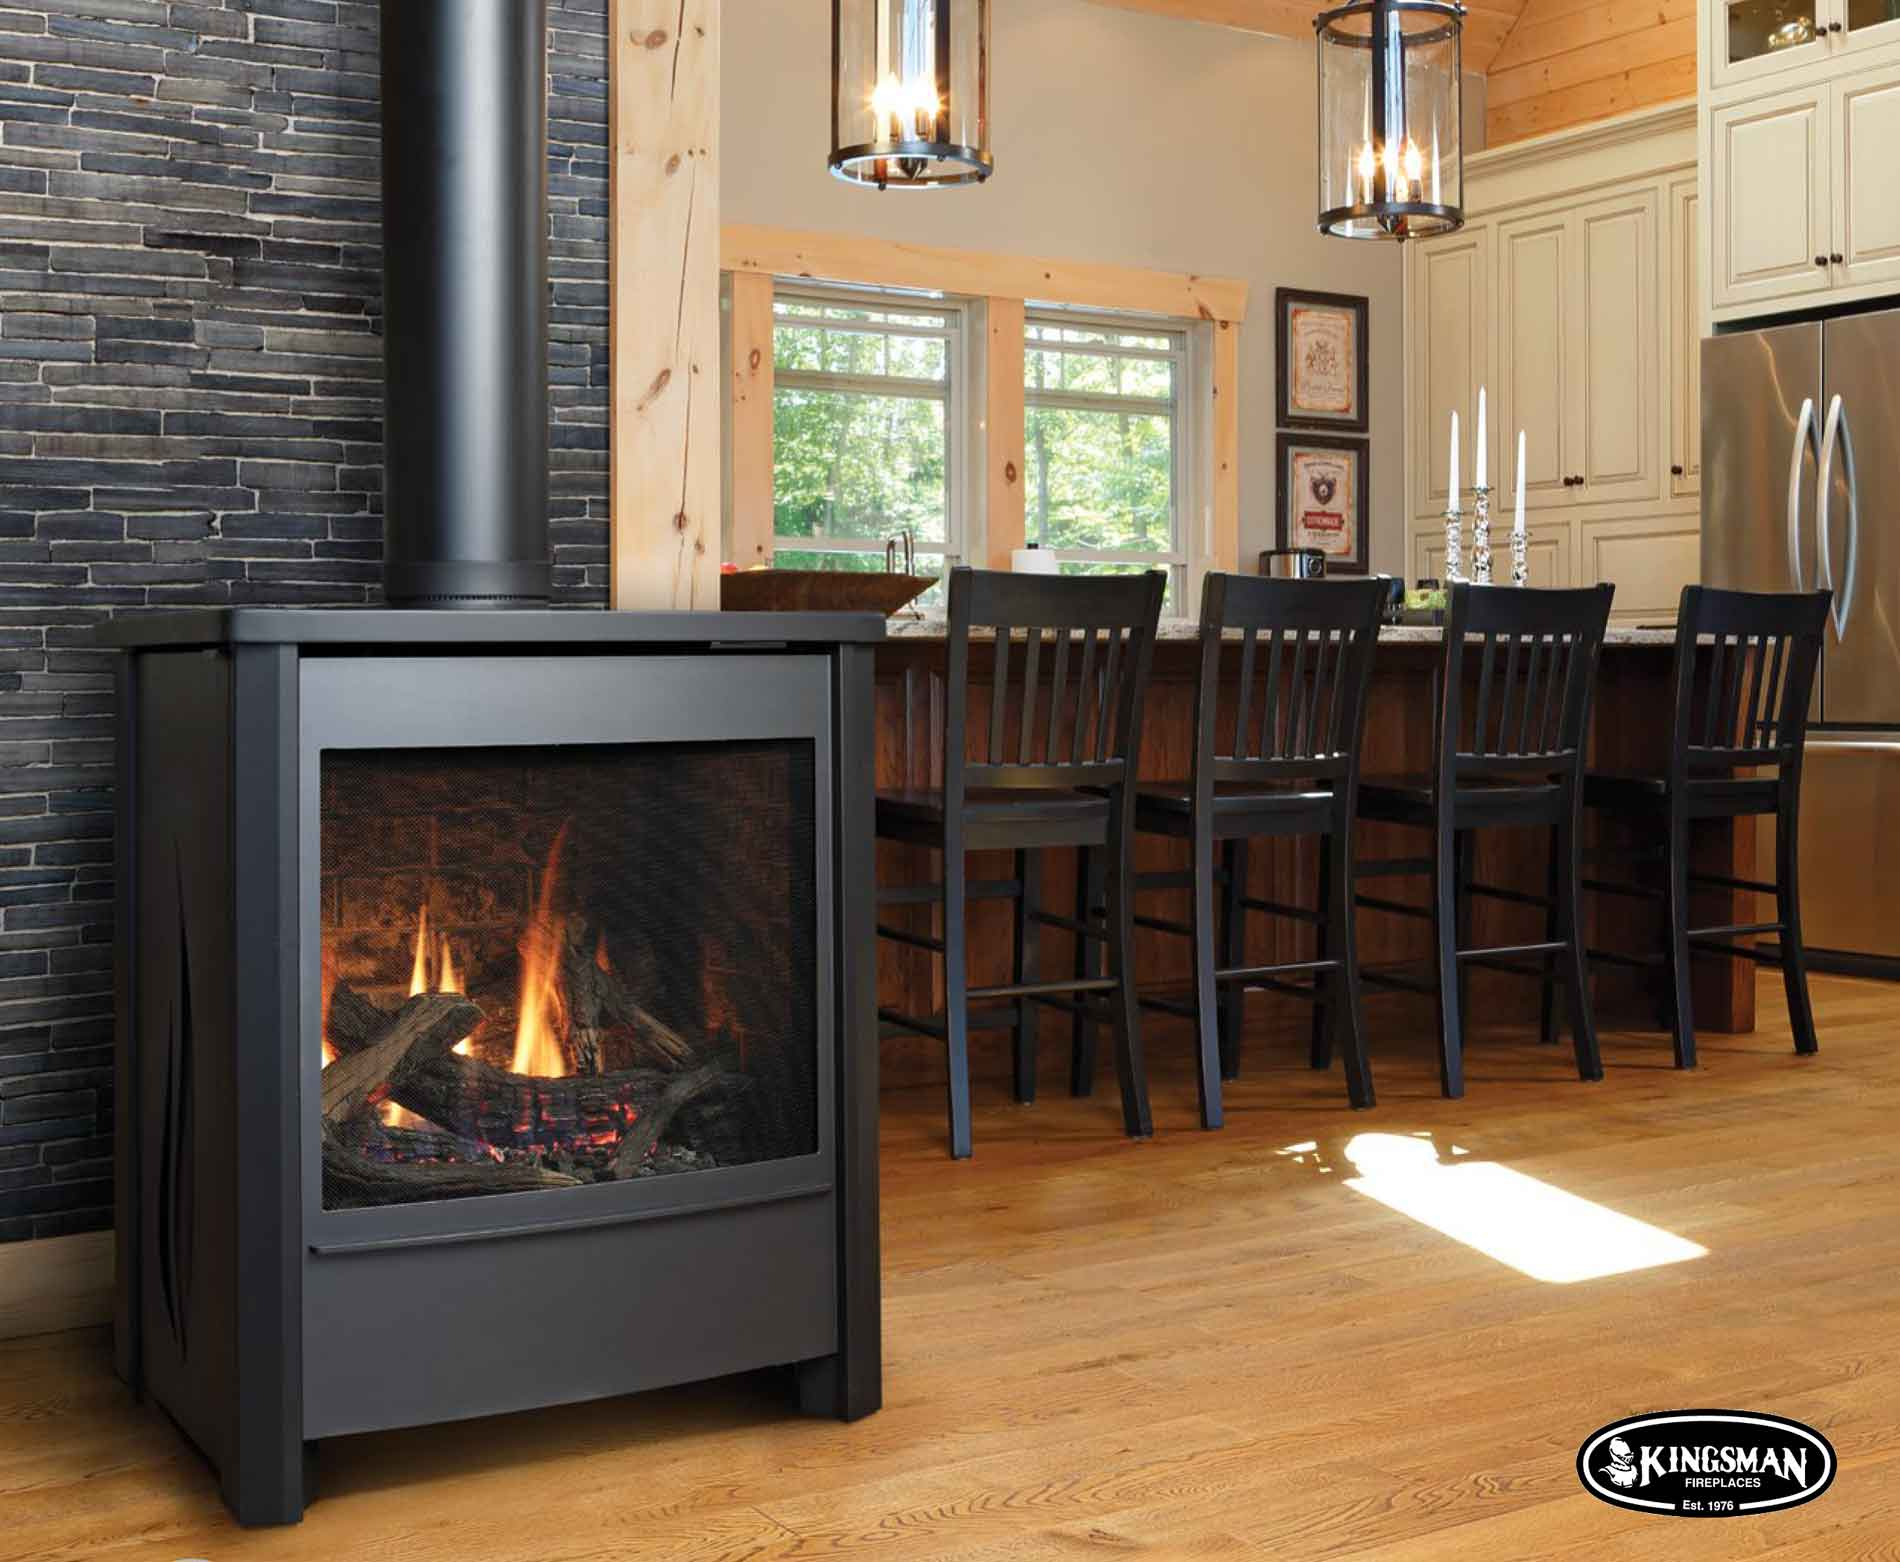 residential fireplaces fireplace napolean scotia wp propane napoleon